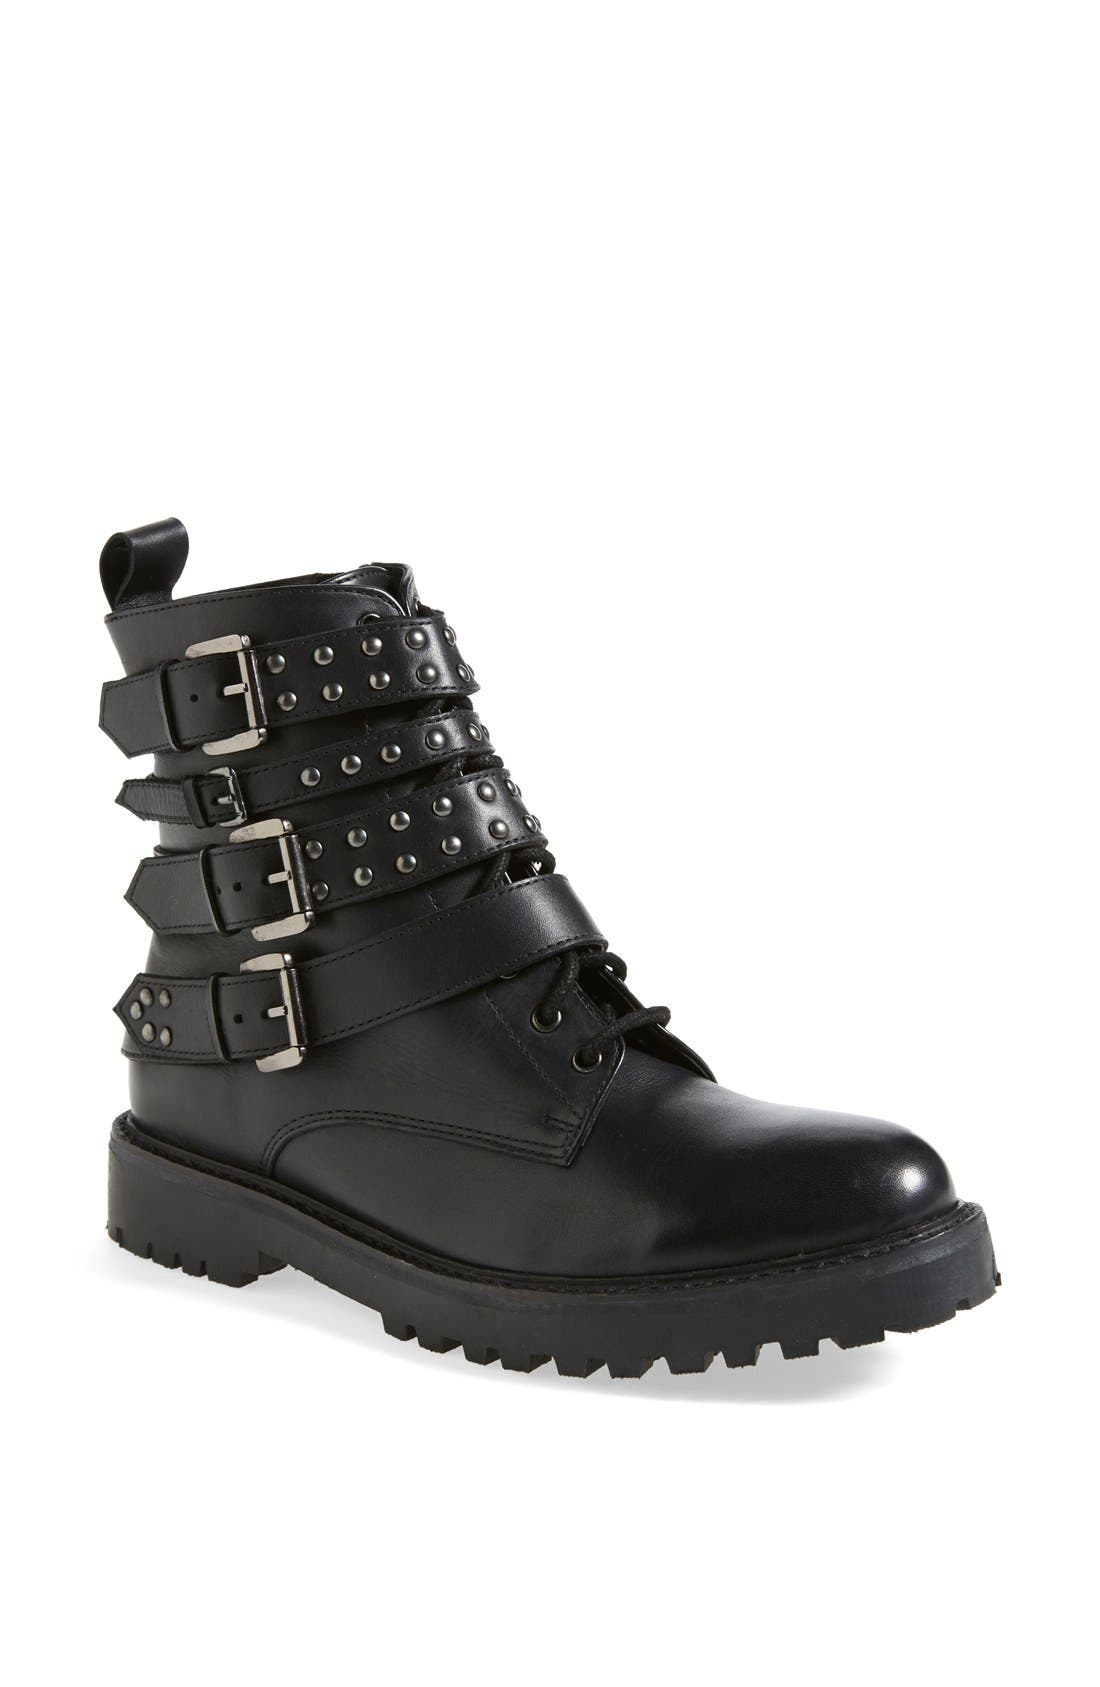 Main Image - Topshop 'Apply' Lace-Up Biker Boot (Women)